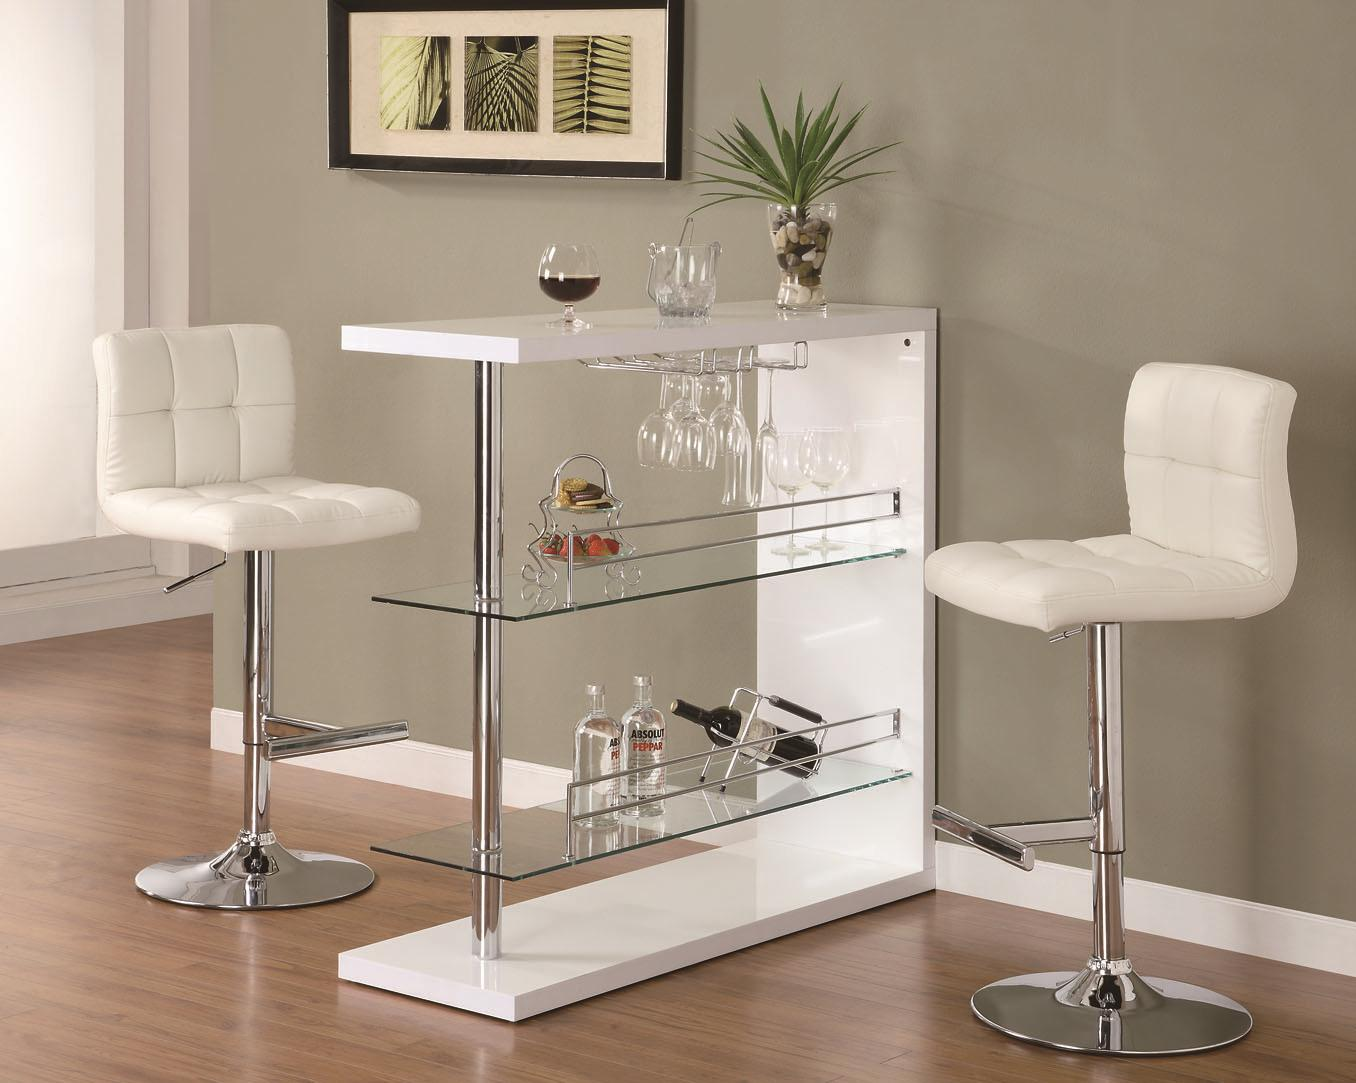 Bar Table Set In Gloss White Finish With 2 Stool By Coaster 100167 120356